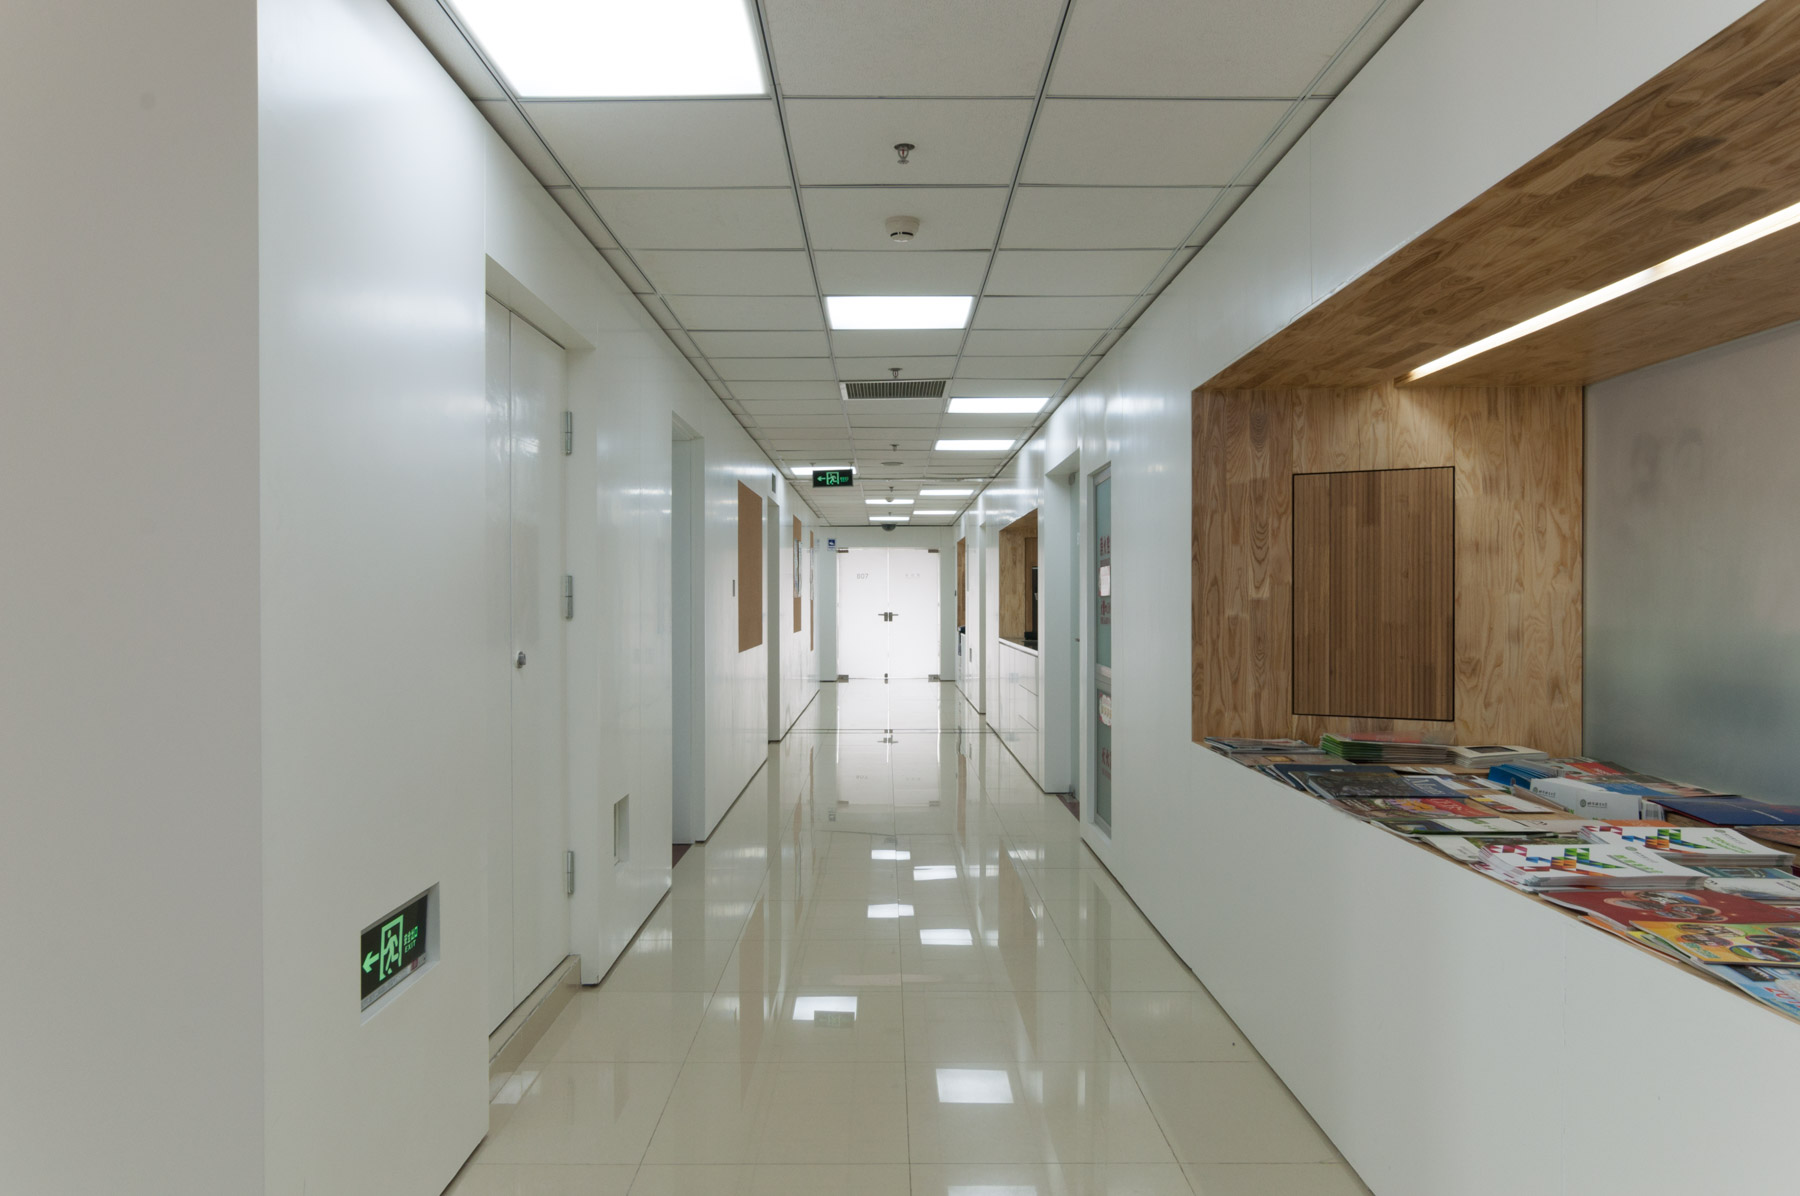 The corridor was remodeled to integrate three public functions: Information bar, tea/coffee kitchen and copy center.